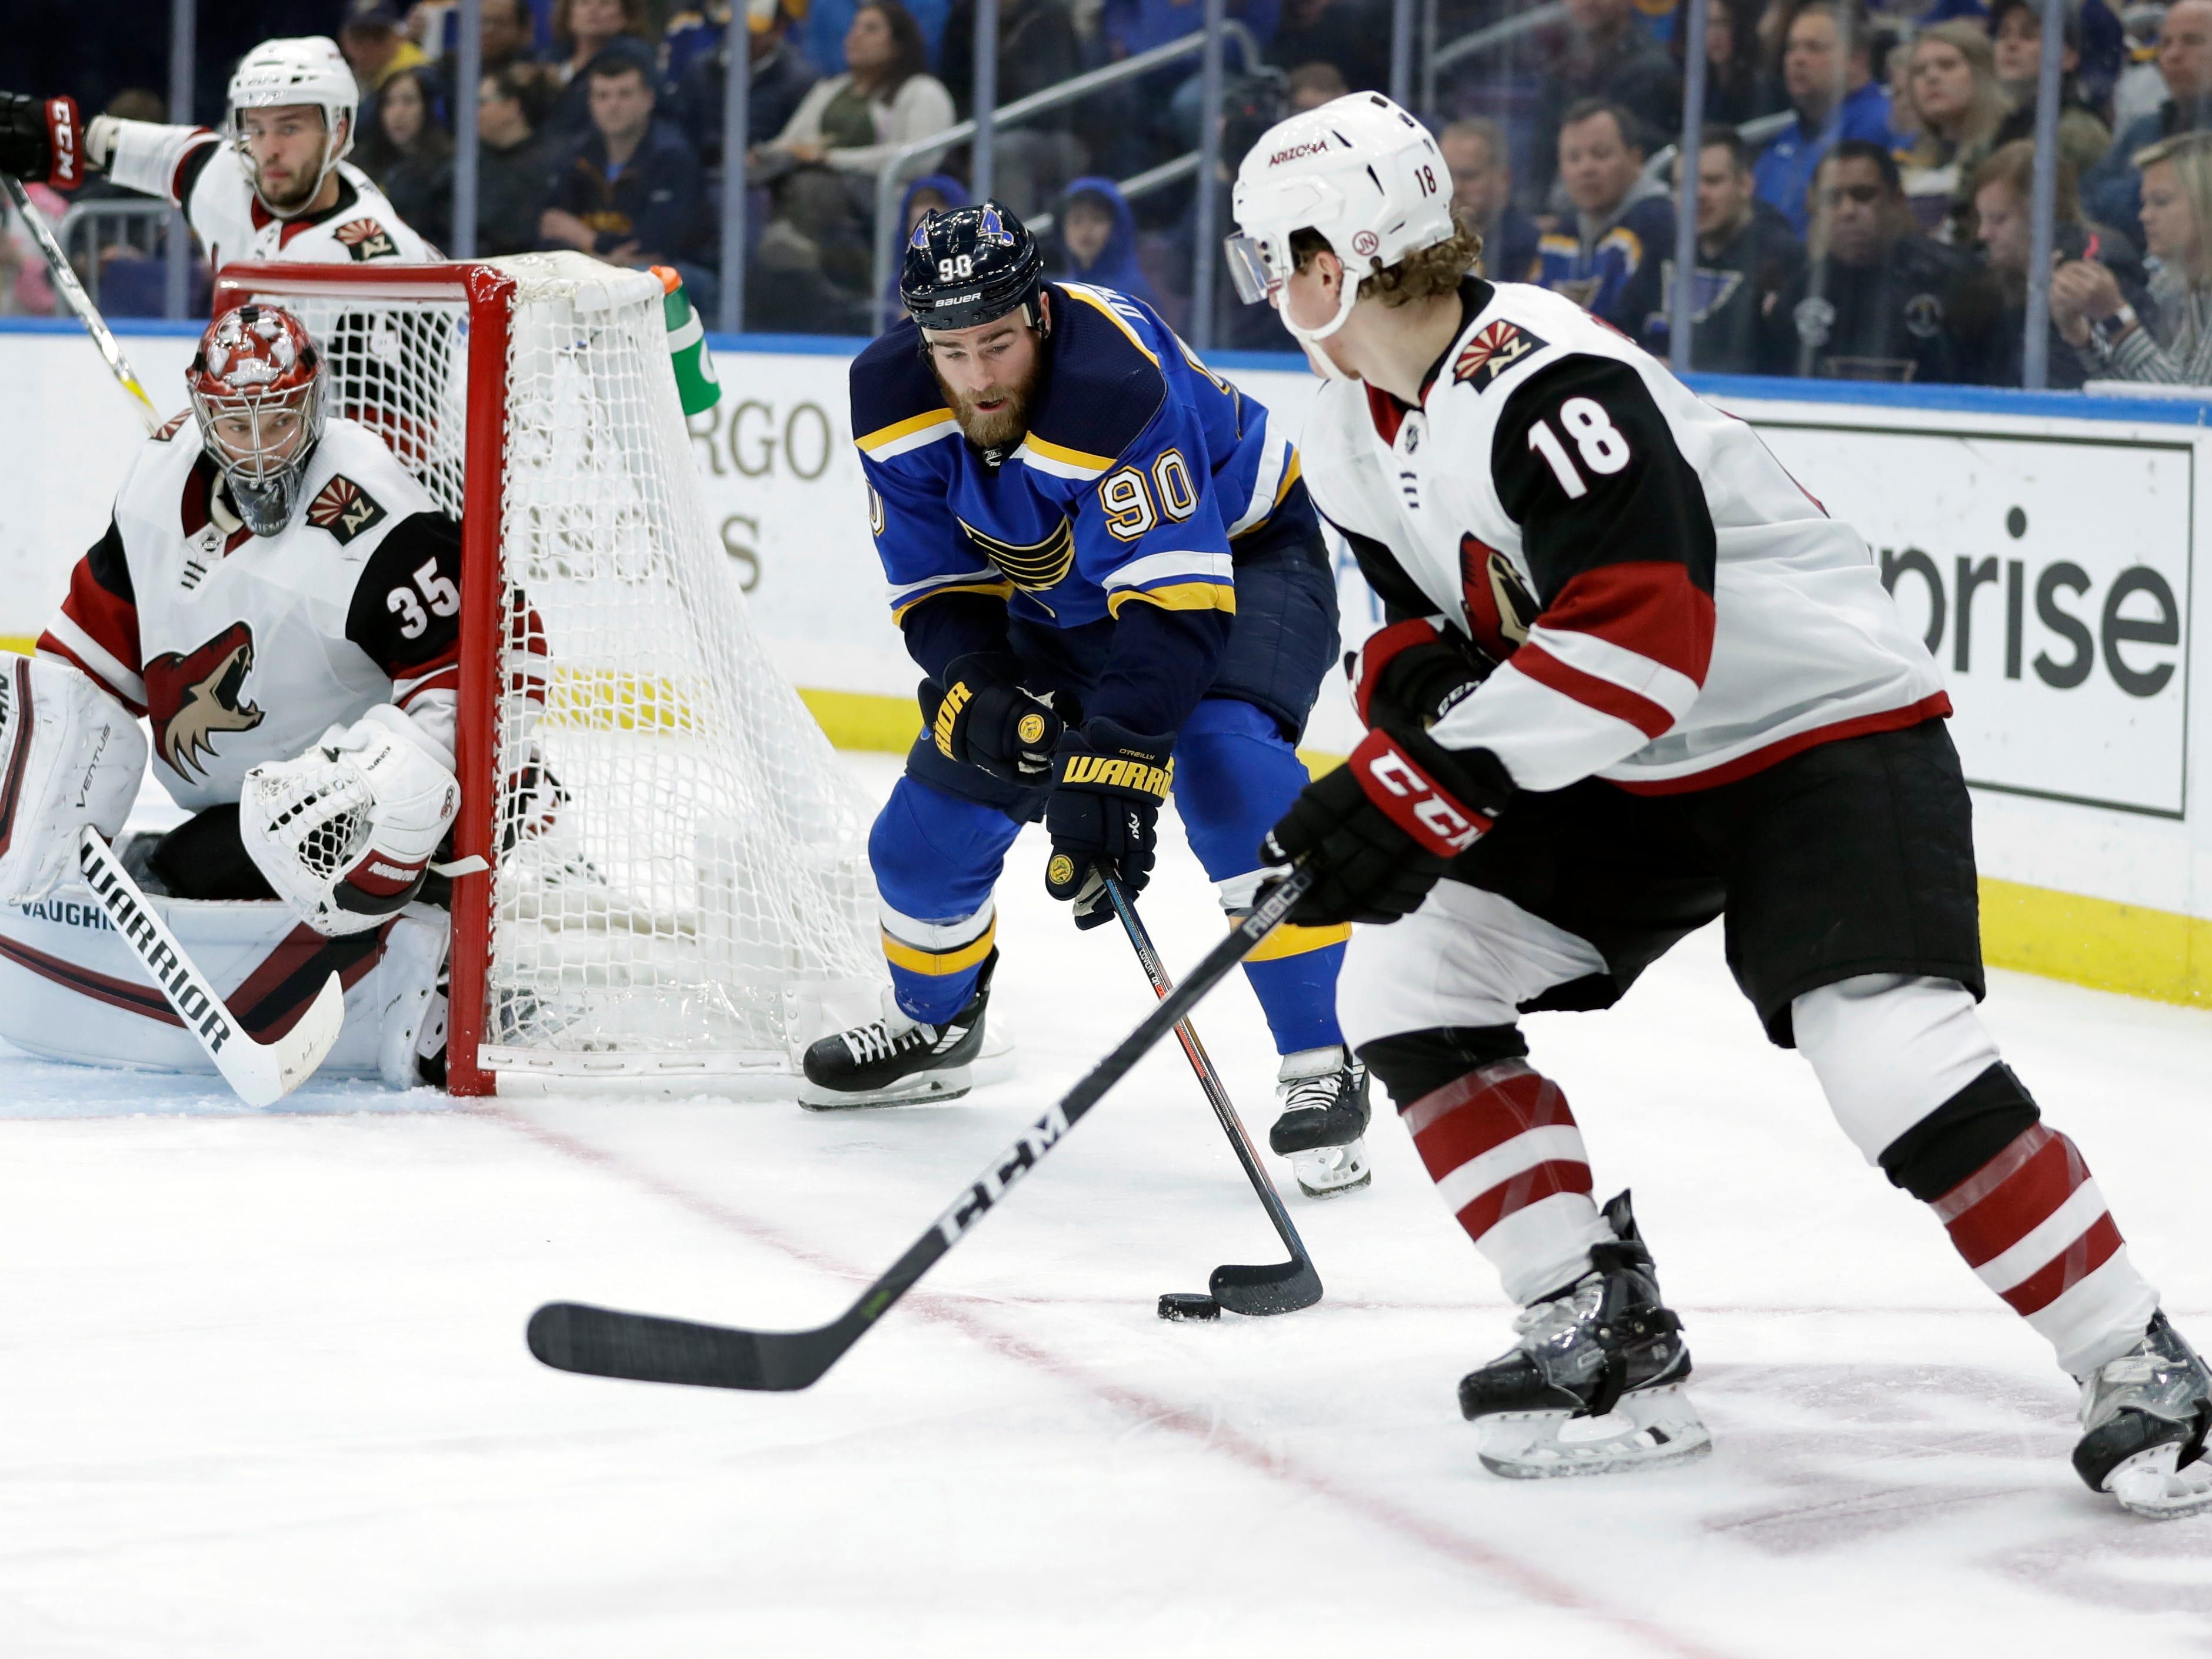 St. Louis Blues' Ryan O'Reilly (90) reaches for the puck as Arizona Coyotes goaltender Darcy Kuemper (35) and Christian Dvorak (18) defend during the second period of an NHL hockey game, Tuesday, March 12, 2019, in St. Louis.